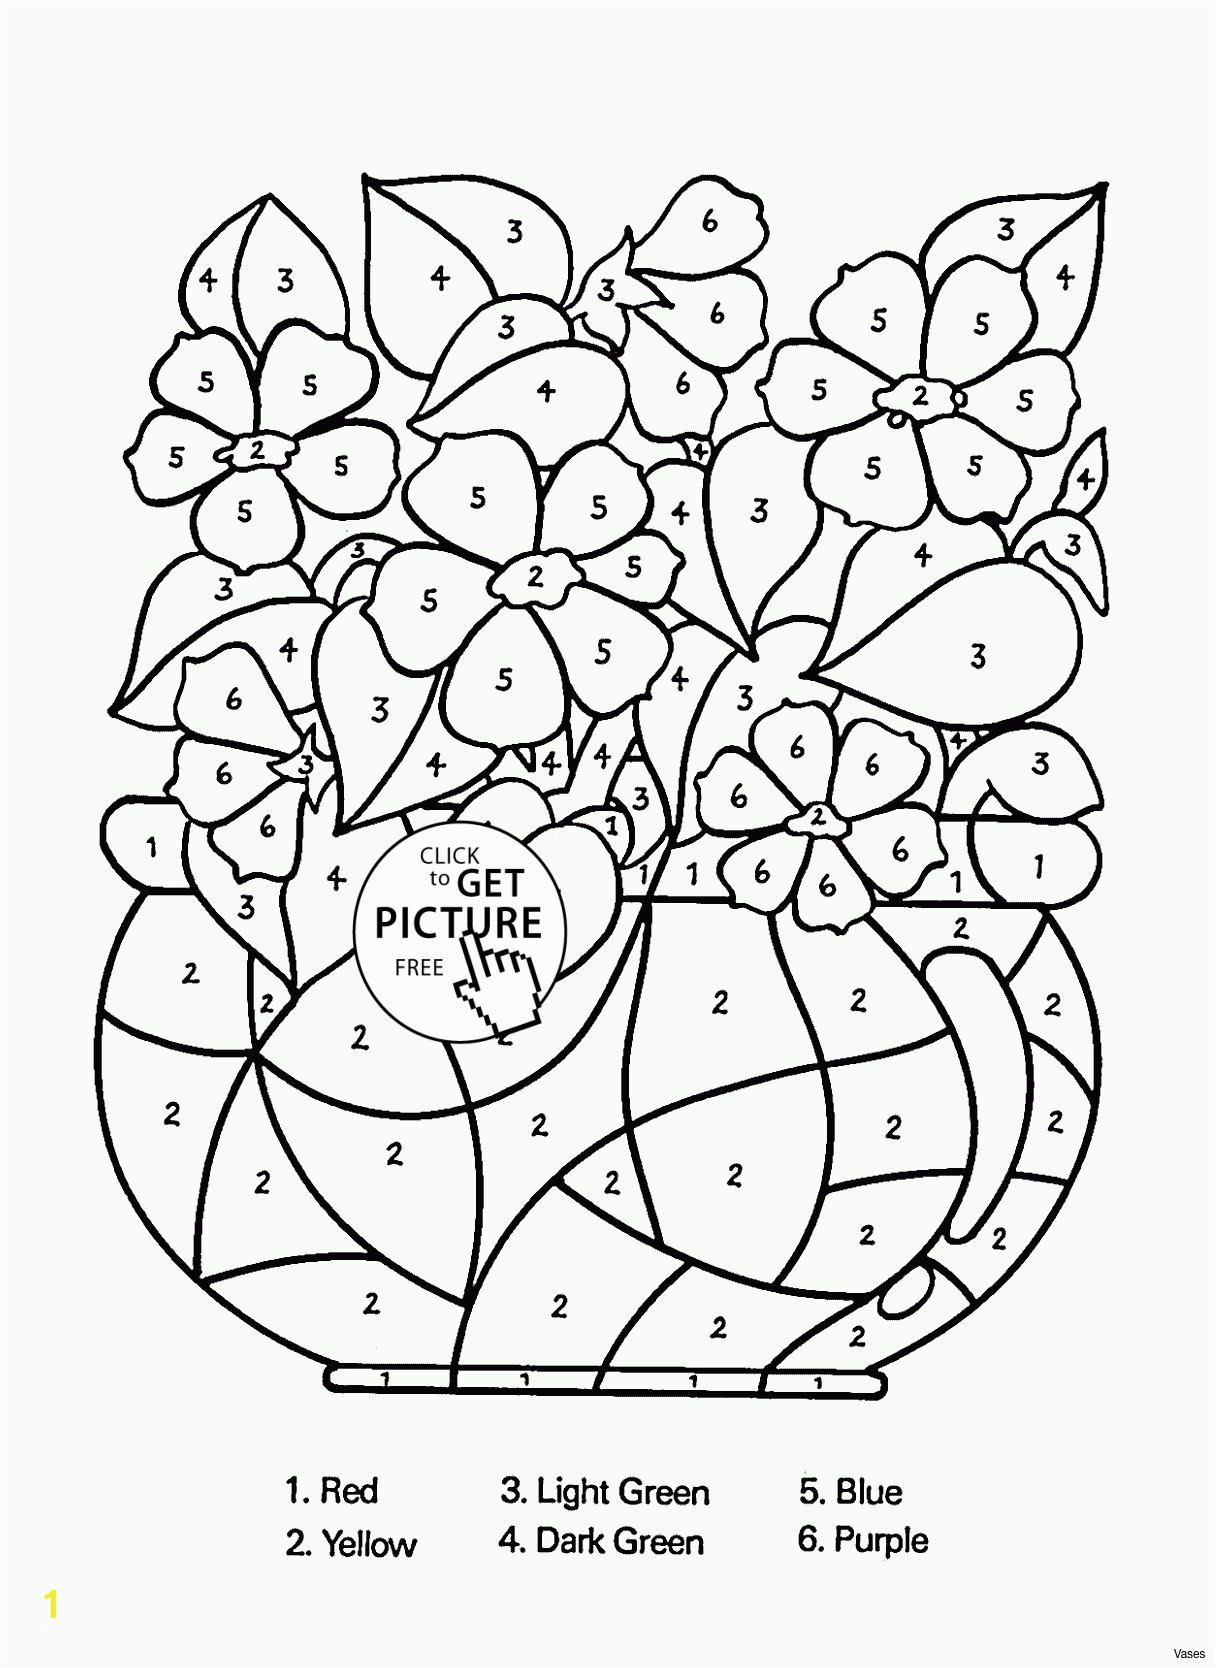 Pokemon Coloring Pages Printable Black and White Best Free Printable Pokemon Coloring Pages Coloring Pages